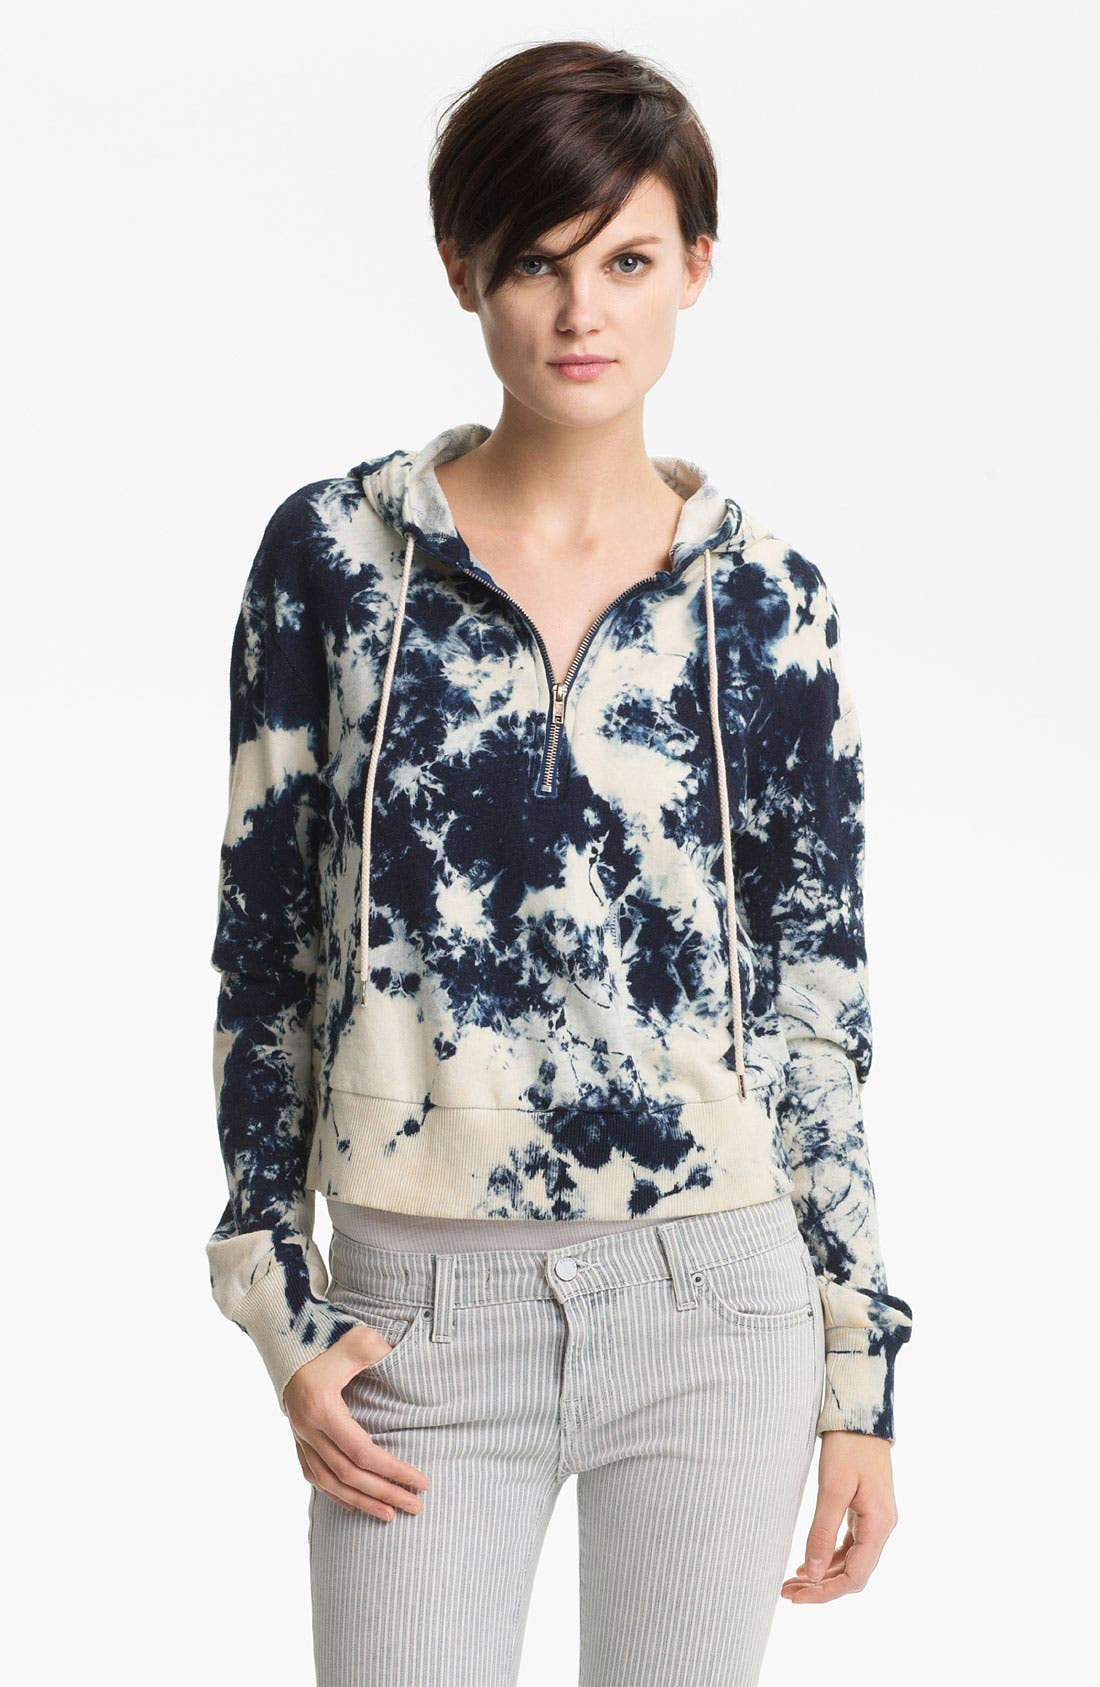 Main Image - TEXTILE Elizabeth and James Hooded Tie Dye Sweatshirt